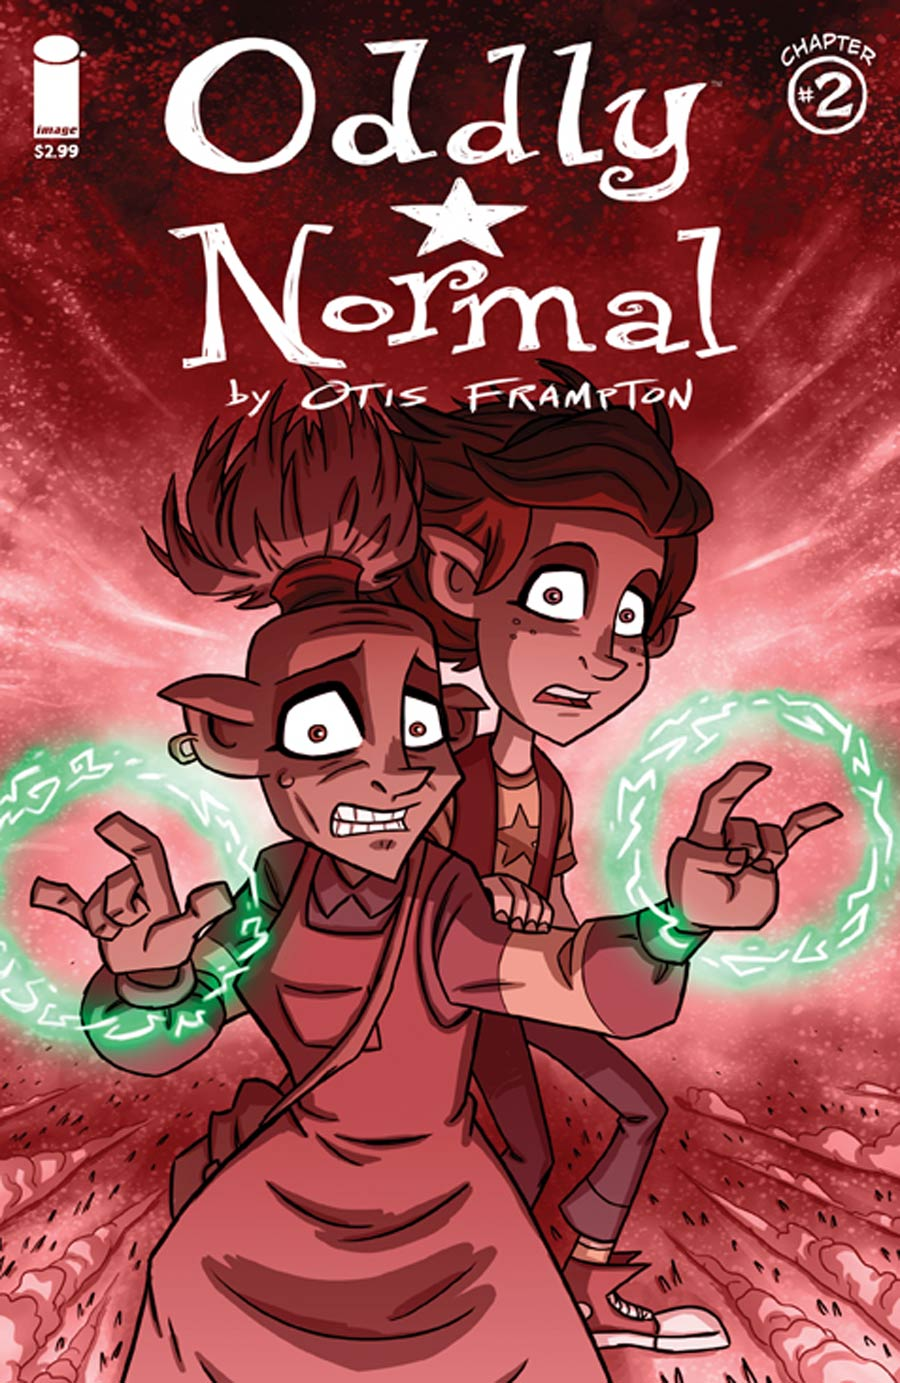 Oddly Normal Vol 2 #2 Cover A Otis Frampton